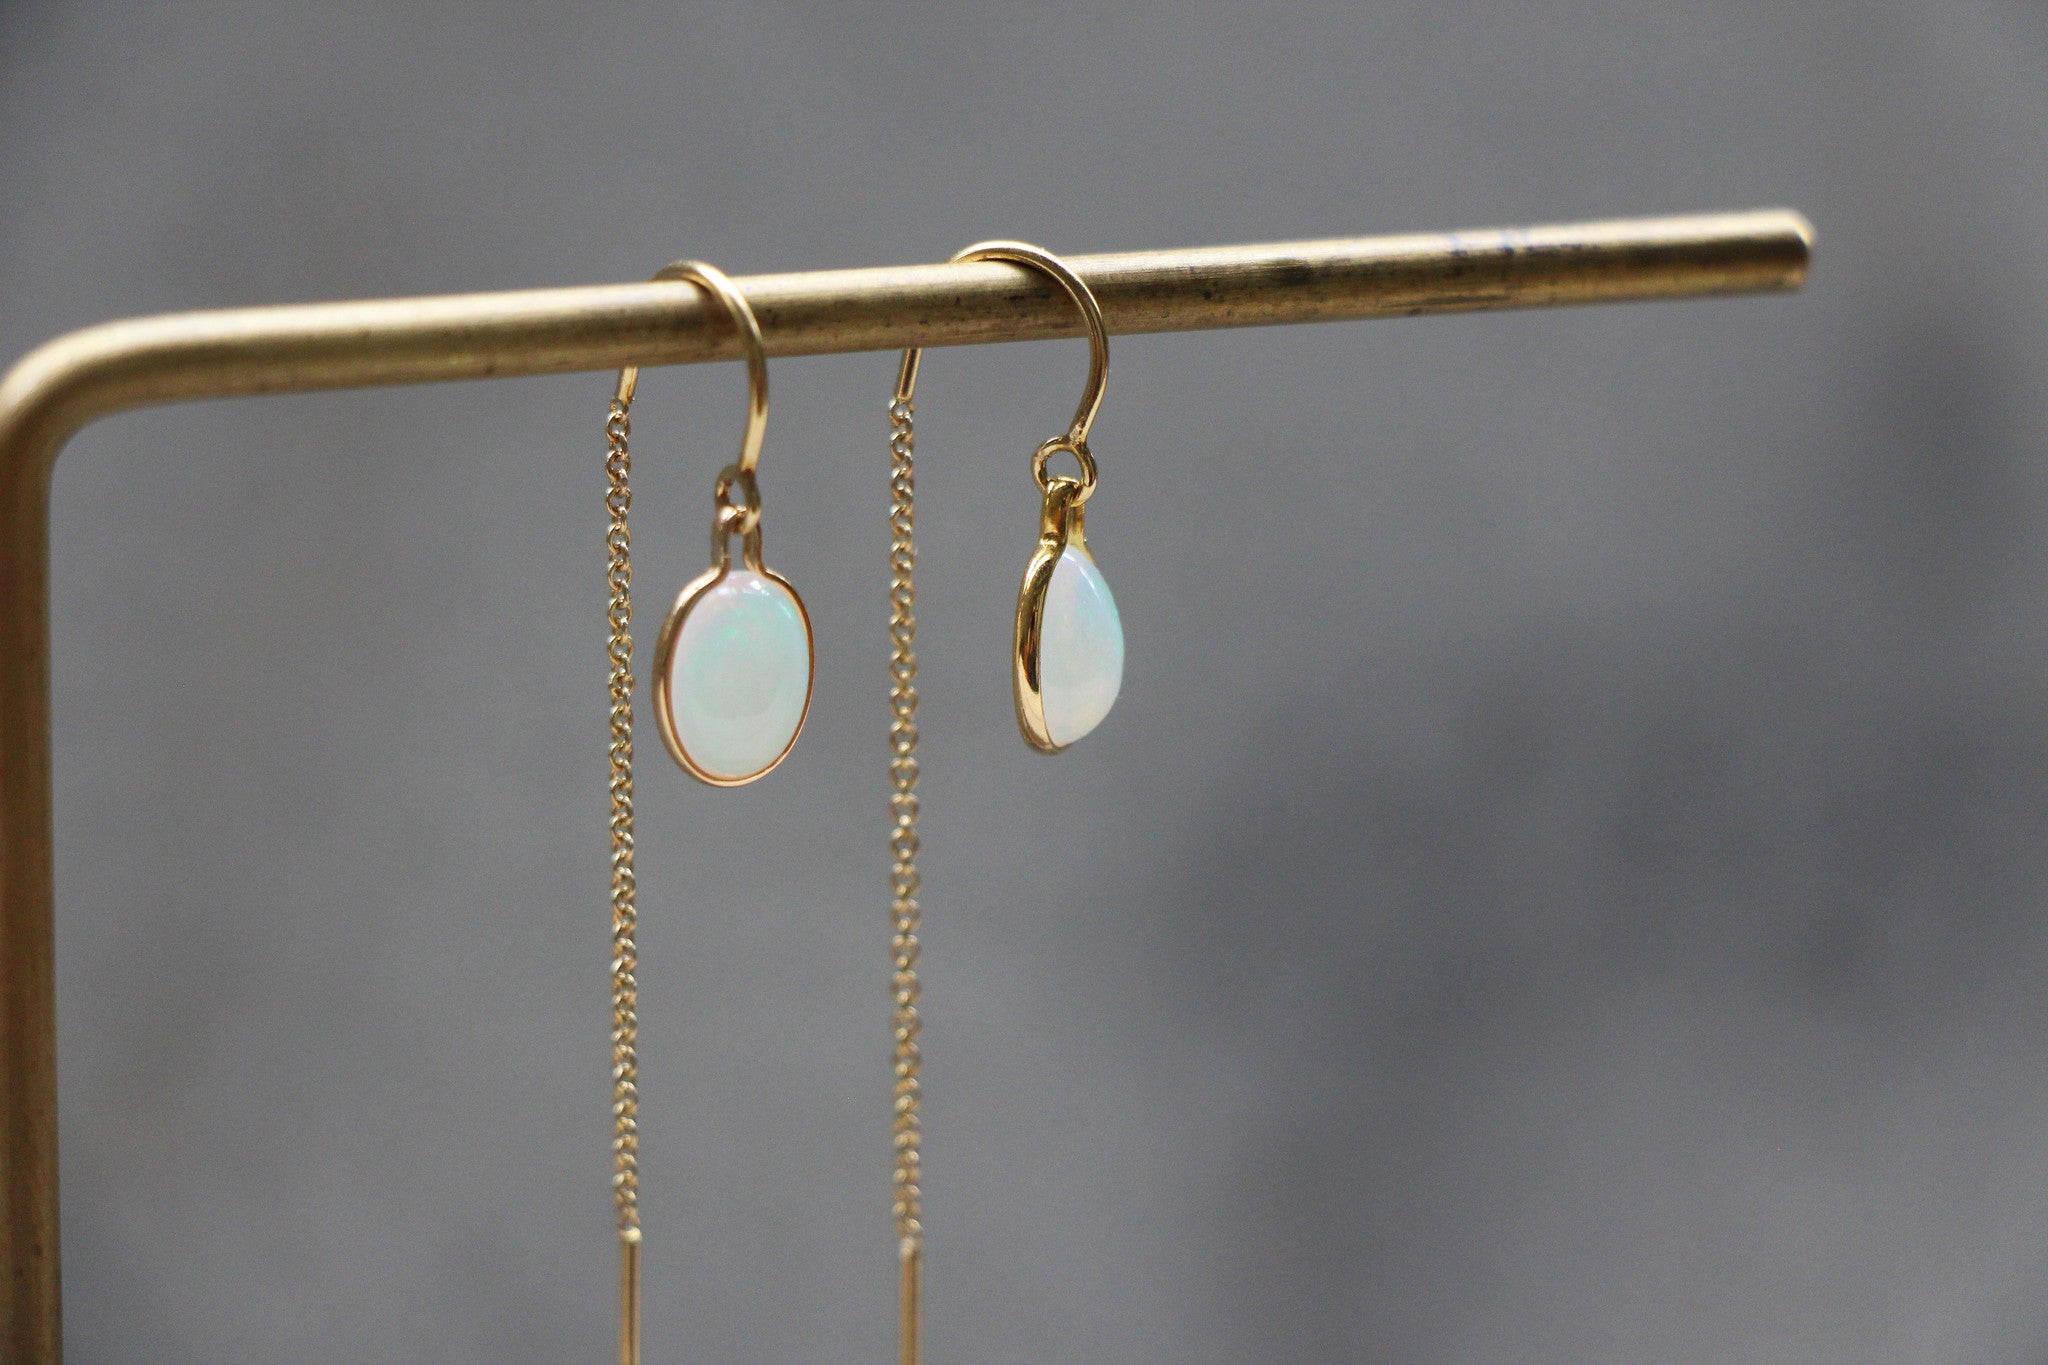 Dainty Opal Threader Earrings in 14k gold filled settings